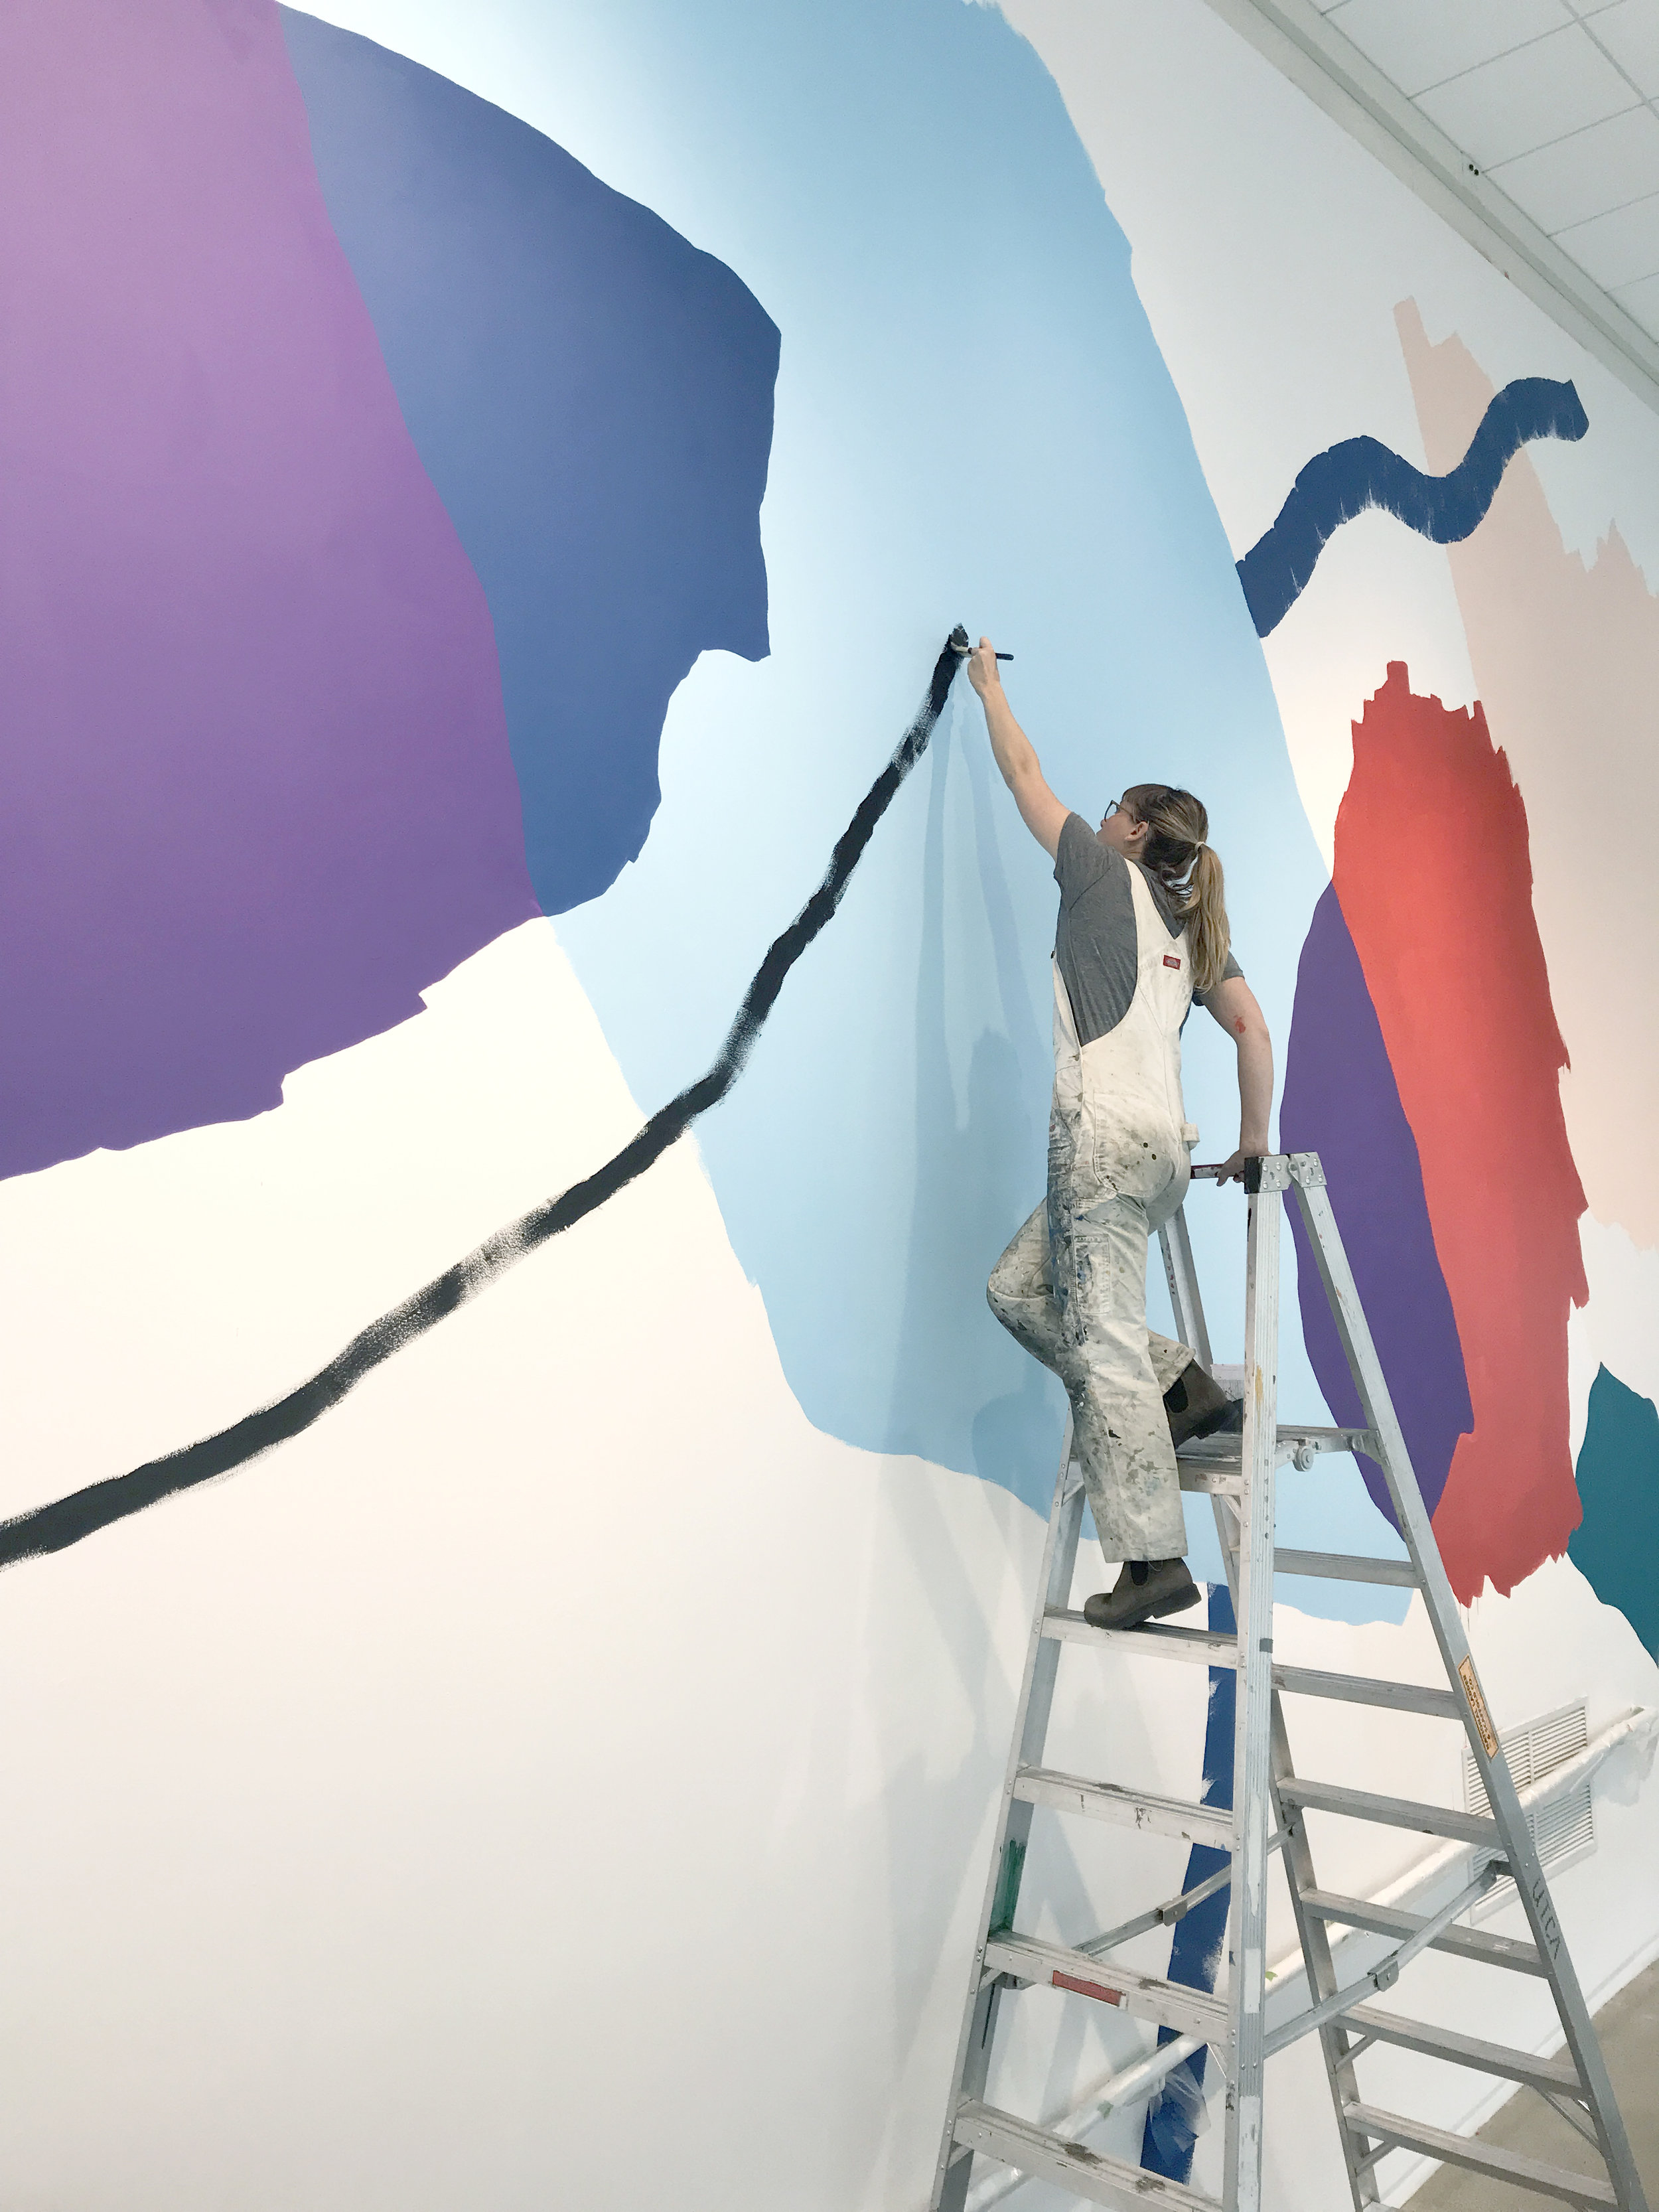 Heather Day paints her mural celebrating Pantone Color of the Year - Ultraviolet at the Urban Institute of Contemporary Art